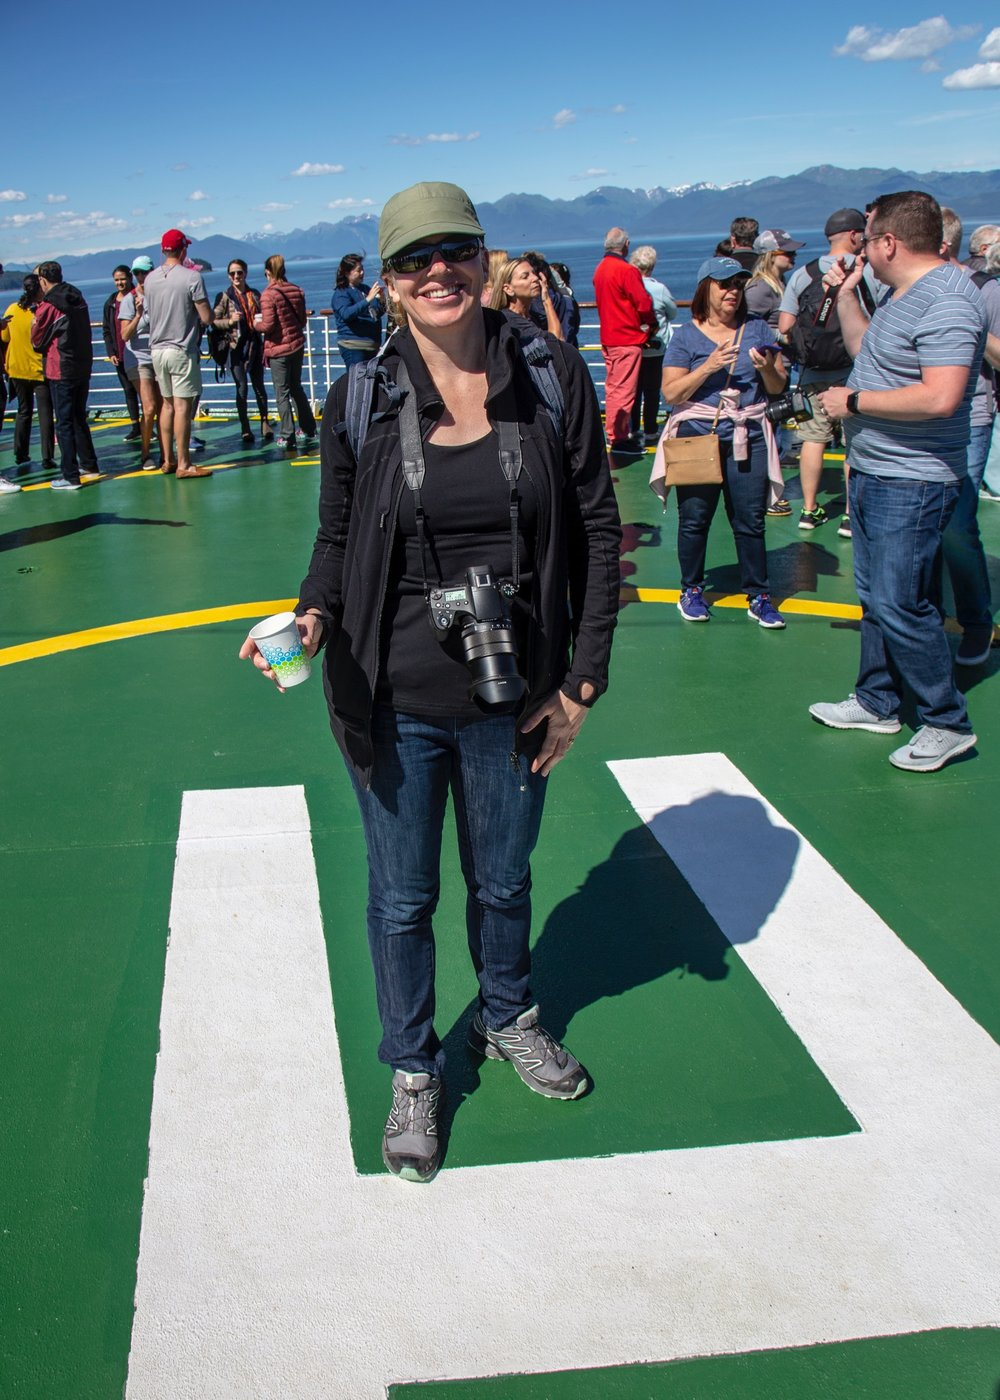 Hanging out on the helipad.